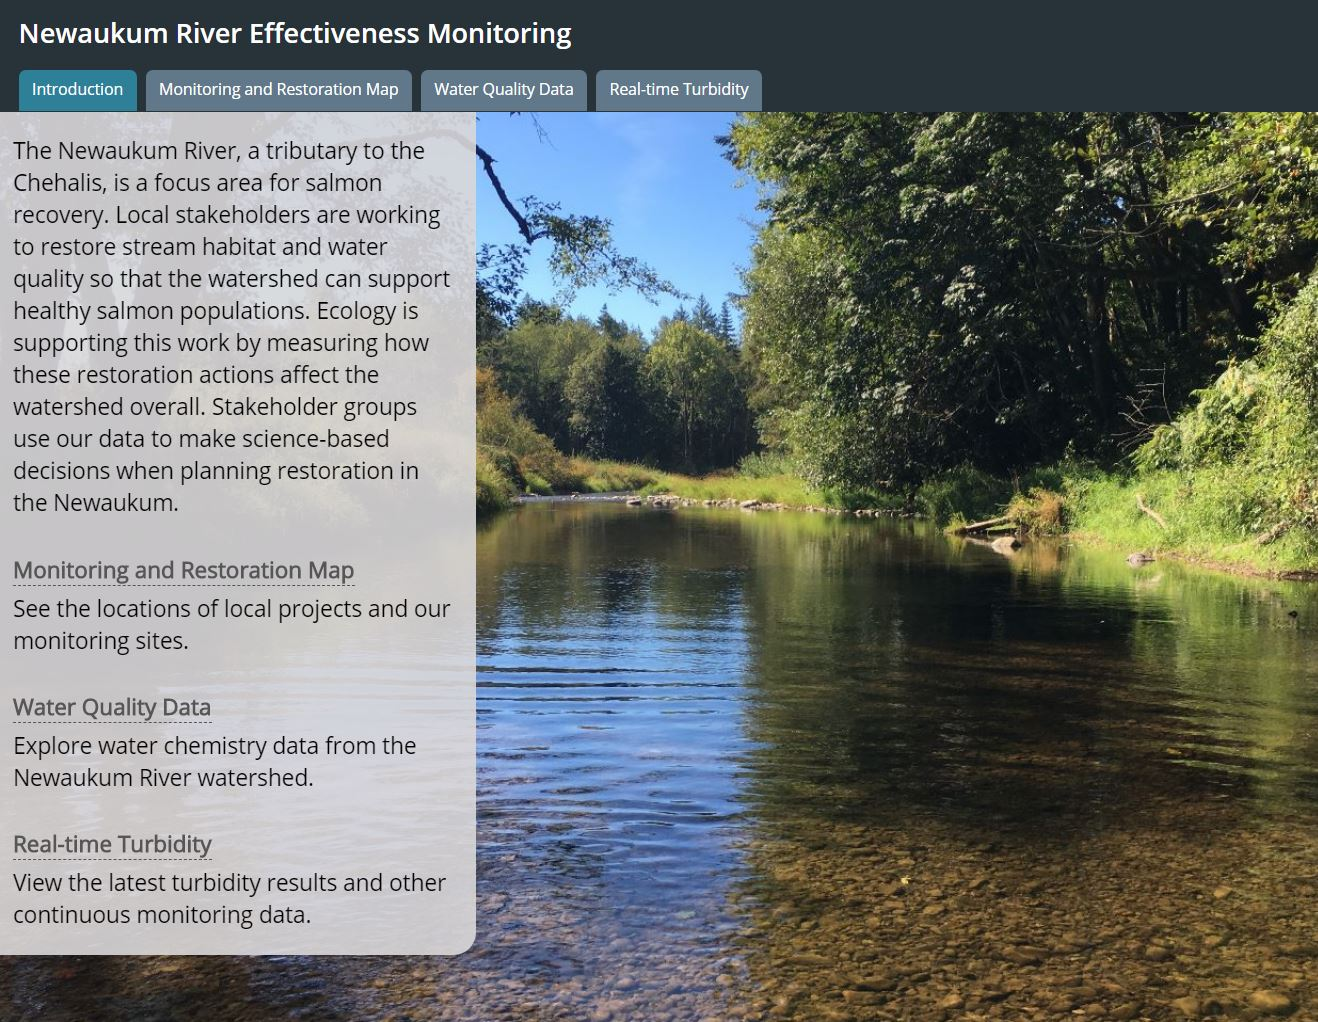 Story map that displays data from the Newaukum River effectiveness monitoring project. Text over the image says